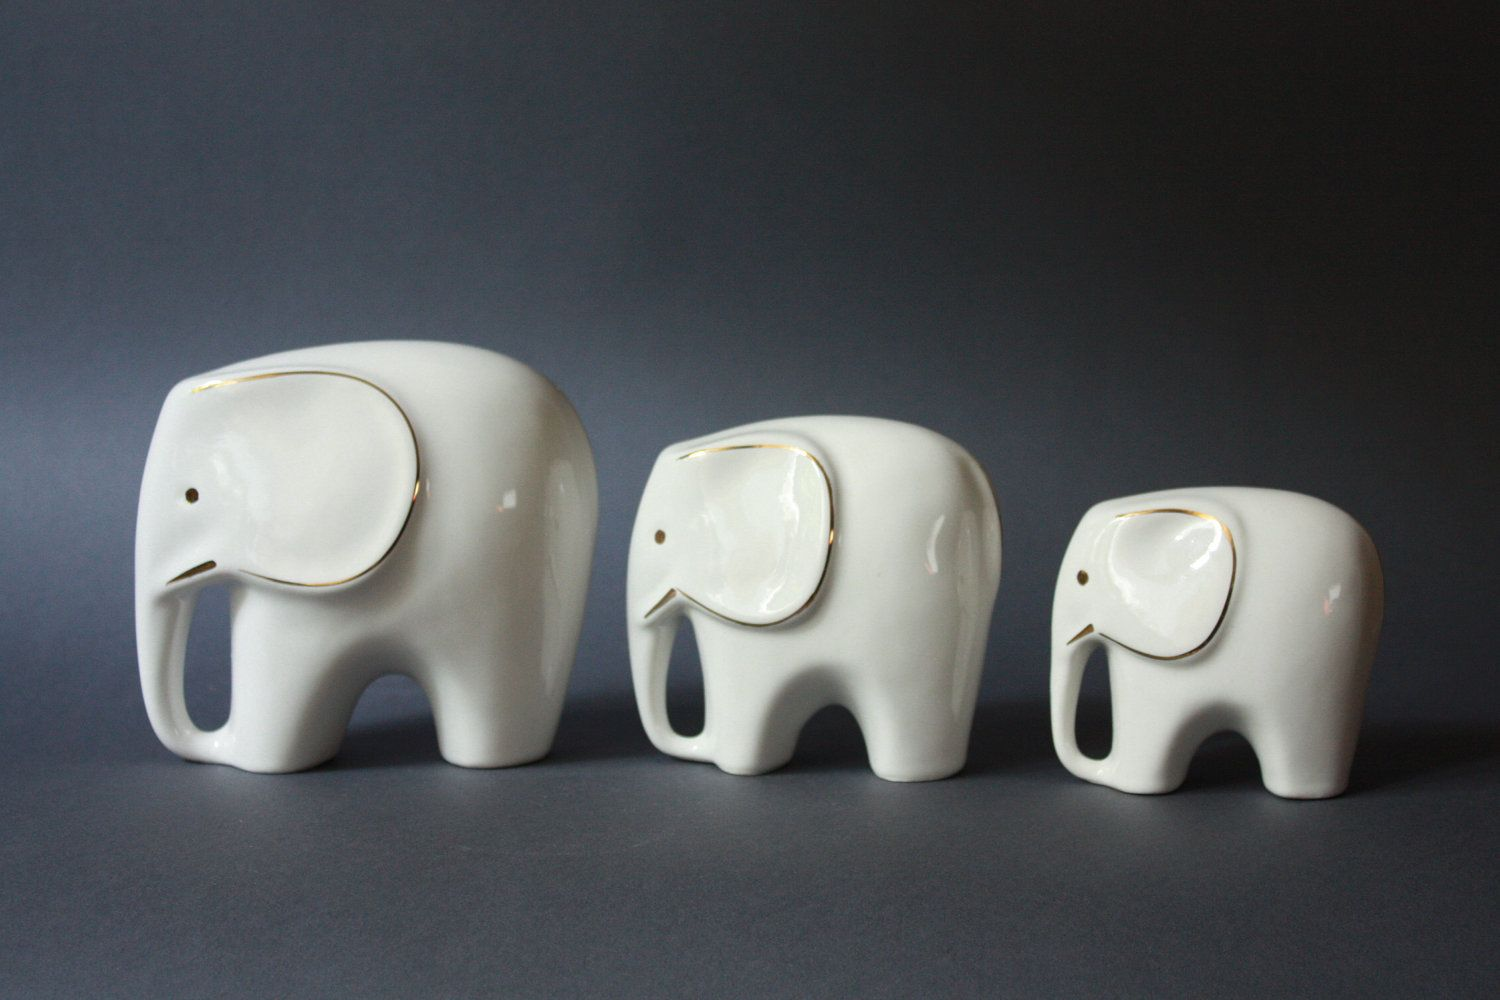 Saw these Mid-Century Modern Set of 3 Porcelain Elephants Figurines